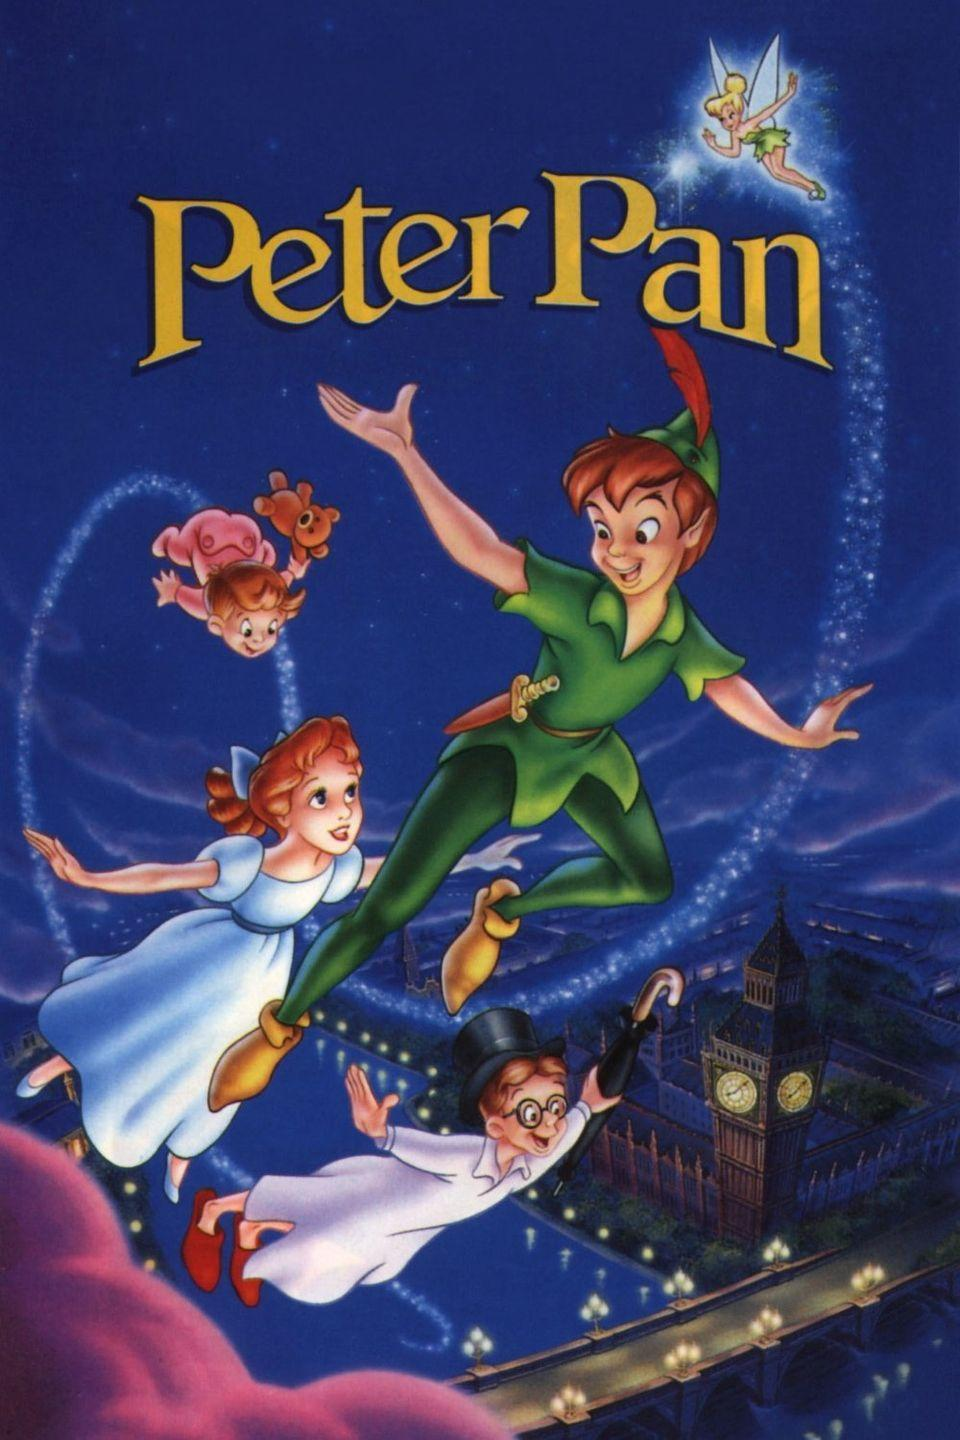 """<p><a href=""""https://www.seventeen.com/celebrity/movies-tv/a34167833/peter-pan-and-wendy-live-action-adapatation-disney/"""" rel=""""nofollow noopener"""" target=""""_blank"""" data-ylk=""""slk:Not much is known about the reboot"""" class=""""link rapid-noclick-resp"""">Not much is known about the reboot</a> for <a href=""""https://www.seventeen.com/celebrity/movies-tv/news/a39693/the-next-disney-classic-to-get-a-live-action-remake-is/"""" rel=""""nofollow noopener"""" target=""""_blank"""" data-ylk=""""slk:the boy who never grew up"""" class=""""link rapid-noclick-resp"""">the boy who never grew up</a>, but it did just find its stars. <a href=""""https://variety.com/2020/film/news/disney-live-action-peter-pan-peter-wendy-1203529492/"""" rel=""""nofollow noopener"""" target=""""_blank"""" data-ylk=""""slk:Variety reports"""" class=""""link rapid-noclick-resp""""><em>Variety</em> reports</a> that Ever Anderson will play Wendy and Alexander Molony will play Peter Pan. Jude Law as been tapped to play Captain Hook, while Yara Shahidi has been added into the cast as the iconic Tinkerbell.</p><p>This film will be directed by David Lowery, the guy behind the epic <em>Pete's Dragon</em> movie. Based on how amazing the dragon CGI was in that movie, Tick-Tock the crocodile is bound to be terrifying. It definitely has some pressure to live up to the other epic live <em>Peter Pan </em>adaptations that came from non-Disney studios, like <em>Hook</em> starring the late Robin Williams and the epic <a href=""""https://www.imdb.com/title/tt0316396/'"""" rel=""""nofollow noopener"""" target=""""_blank"""" data-ylk=""""slk:2003 version"""" class=""""link rapid-noclick-resp"""">2003 version</a> starring cutie Jeremy Sumpter.</p><p><a class=""""link rapid-noclick-resp"""" href=""""https://www.amazon.com/Peter-Pan-Signature-Collection-Bonus/dp/B07CRY159M/?tag=syn-yahoo-20&ascsubtag=%5Bartid%7C10065.g.2936%5Bsrc%7Cyahoo-us"""" rel=""""nofollow noopener"""" target=""""_blank"""" data-ylk=""""slk:Watch the Original"""">Watch the Original</a></p>"""